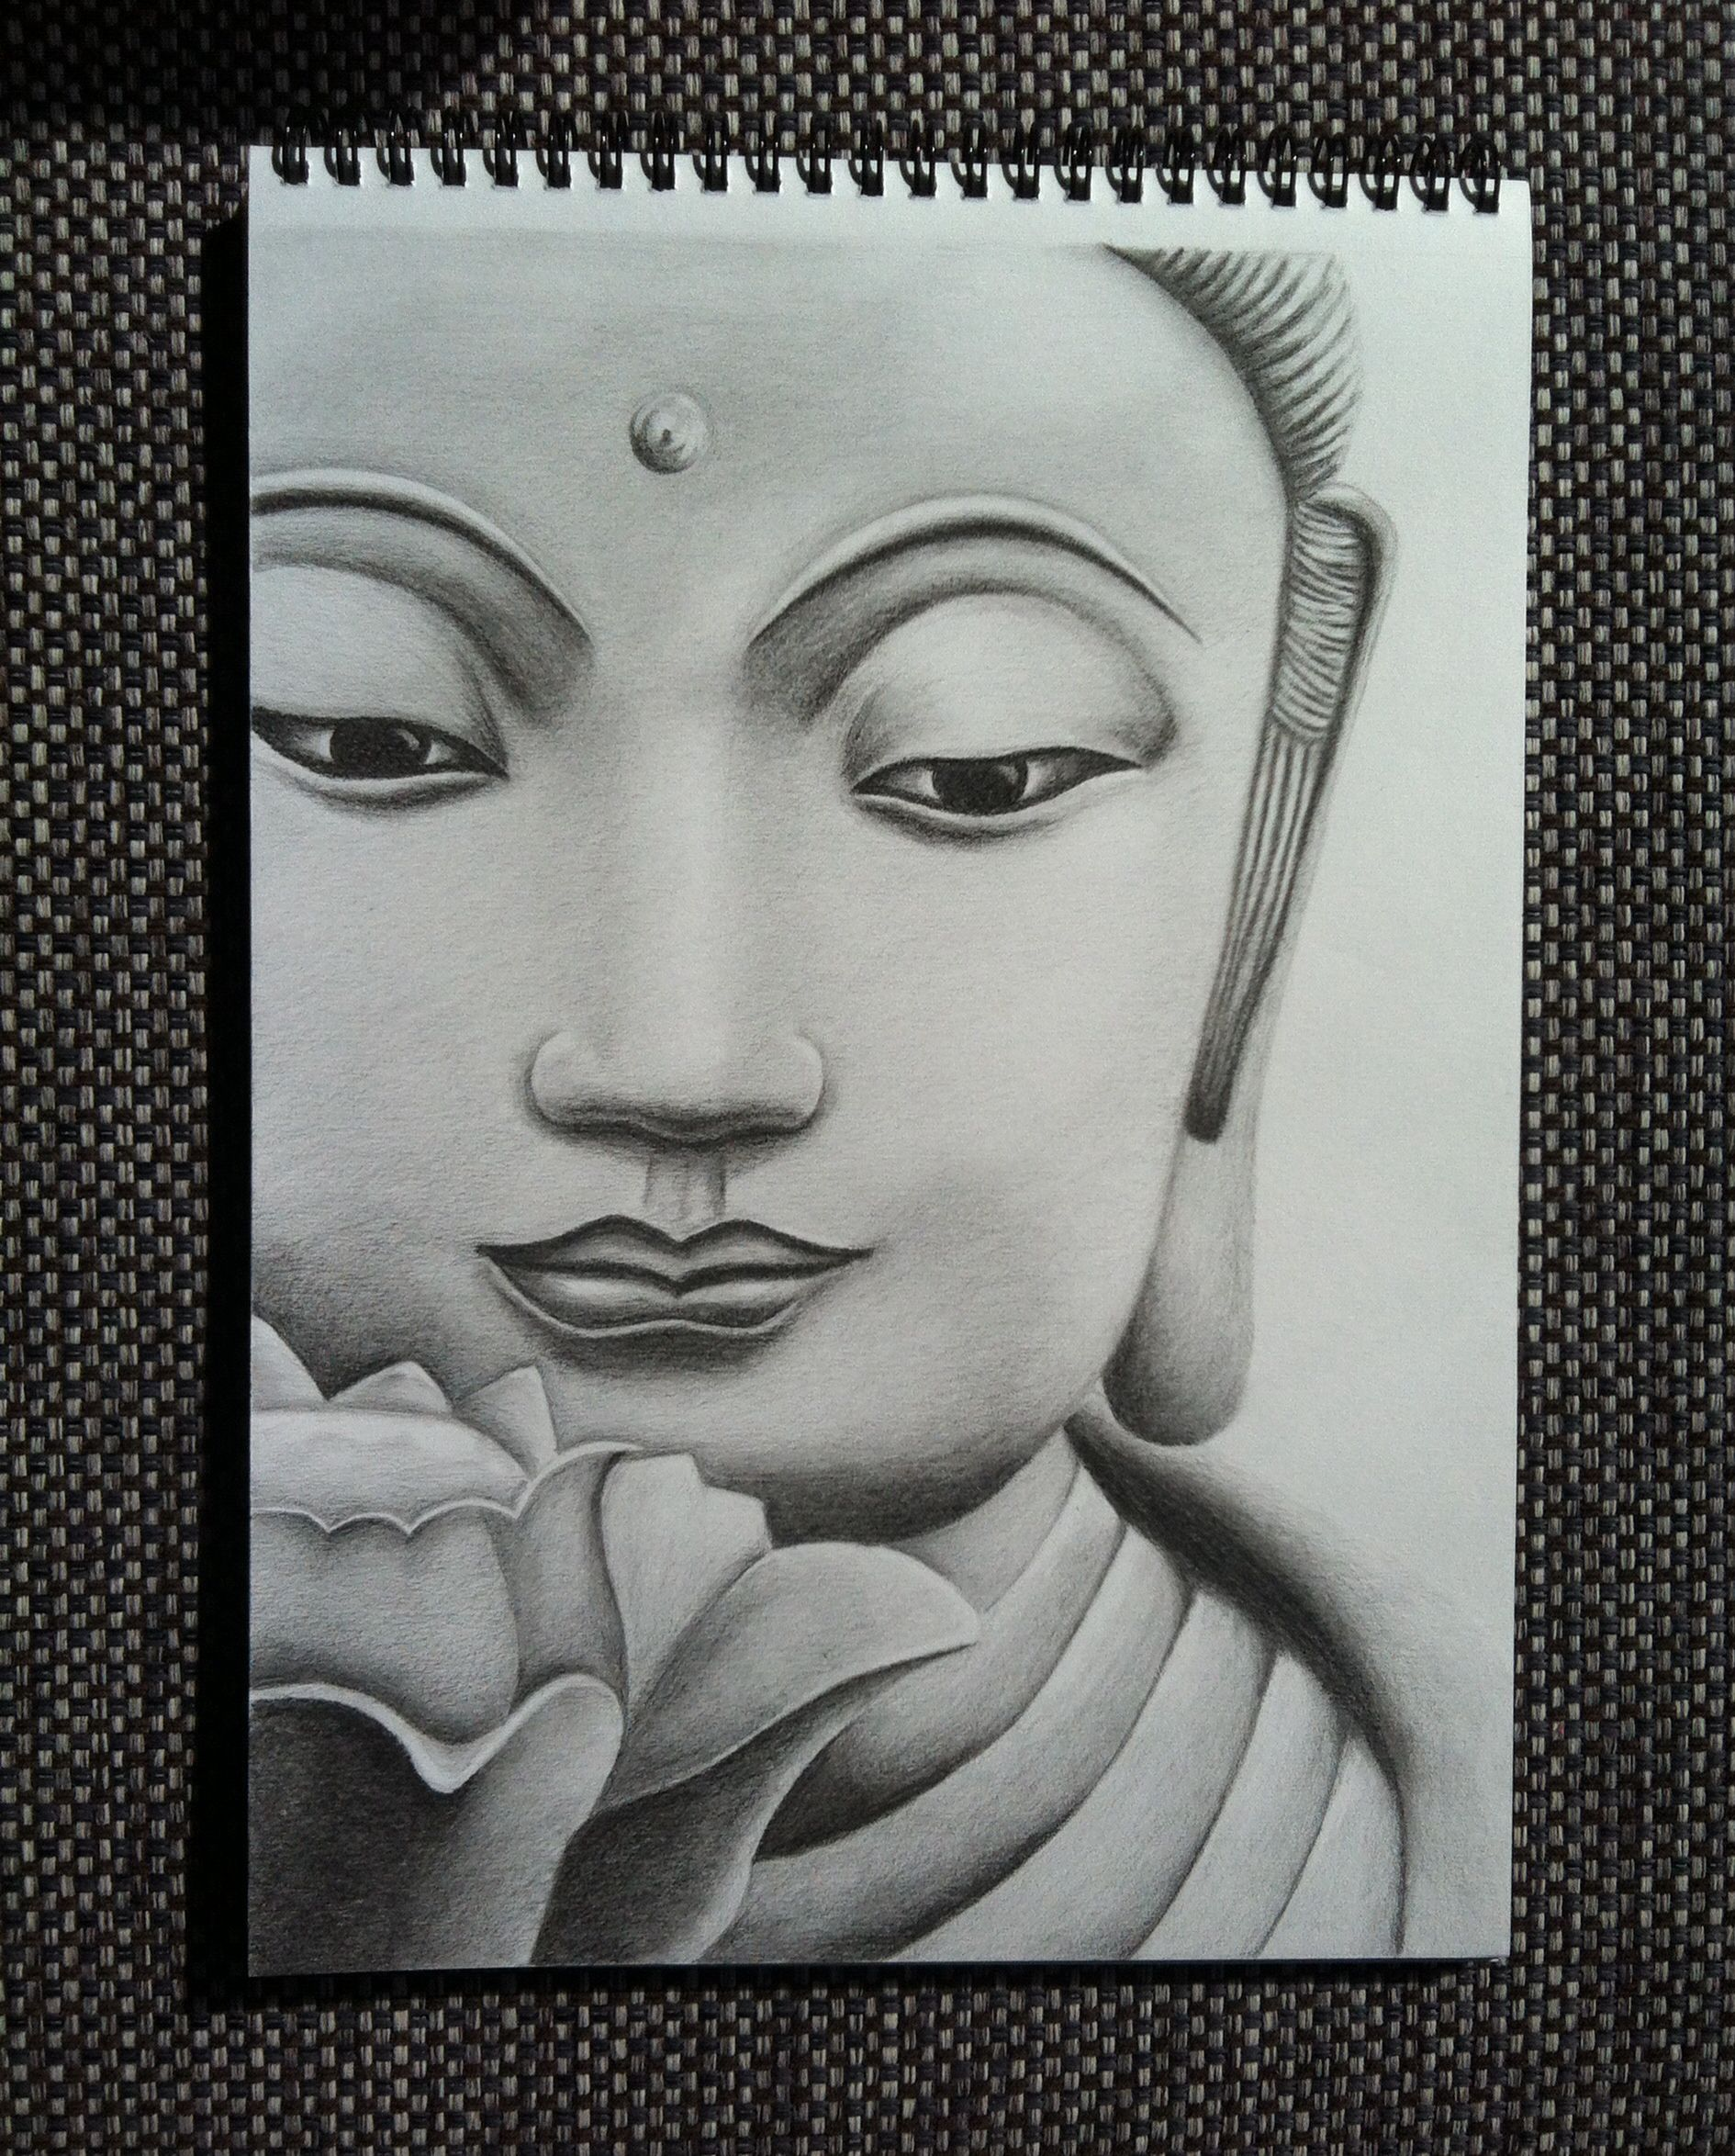 Buddha pencil drawing by sonia